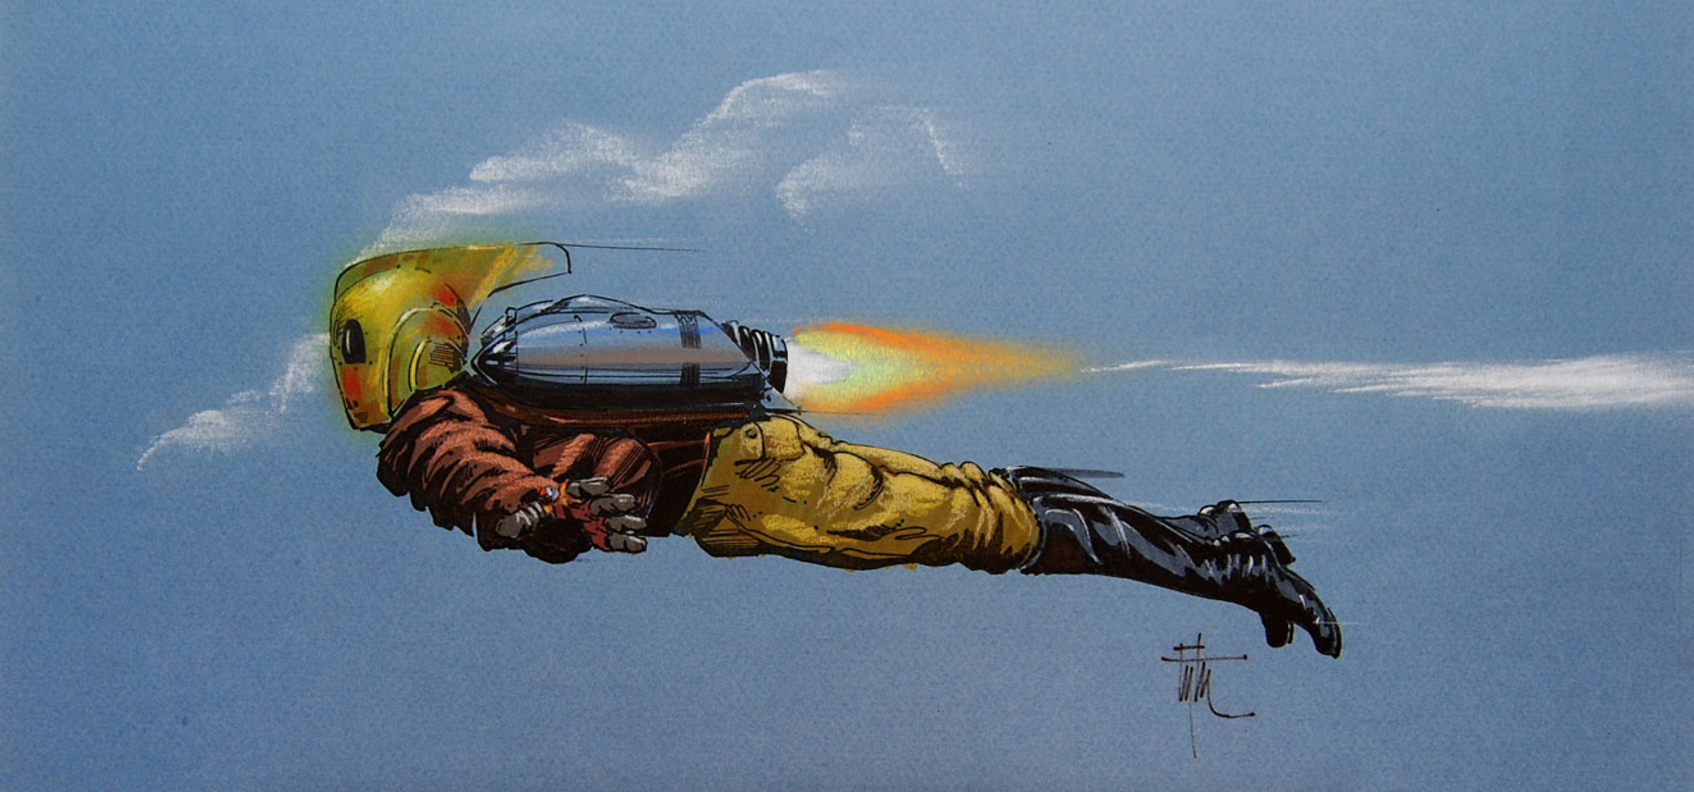 Edward Eyth Design sketching Rocketeer side view flying